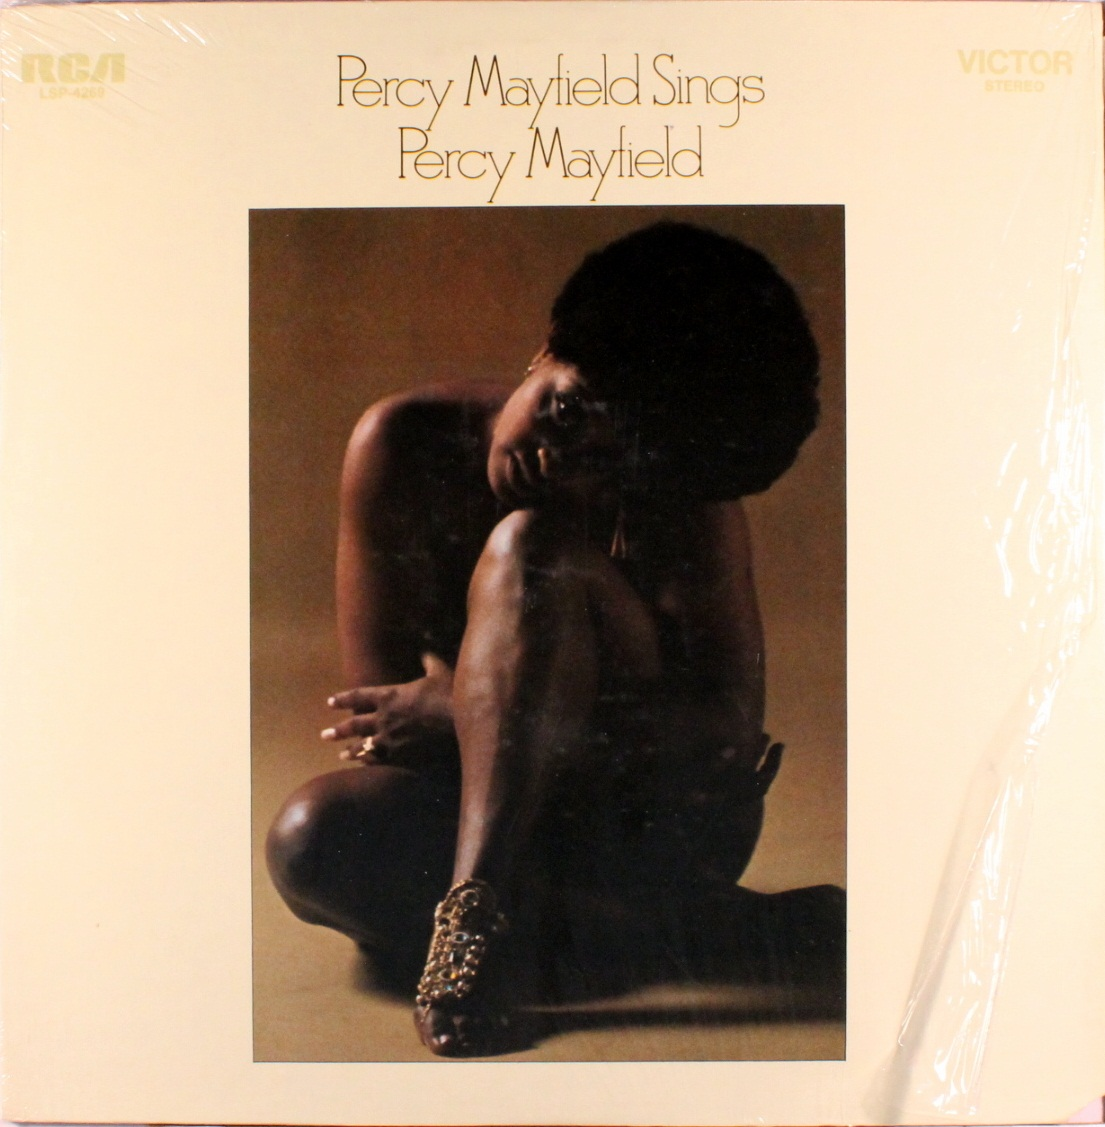 Percy Mayfield Sings